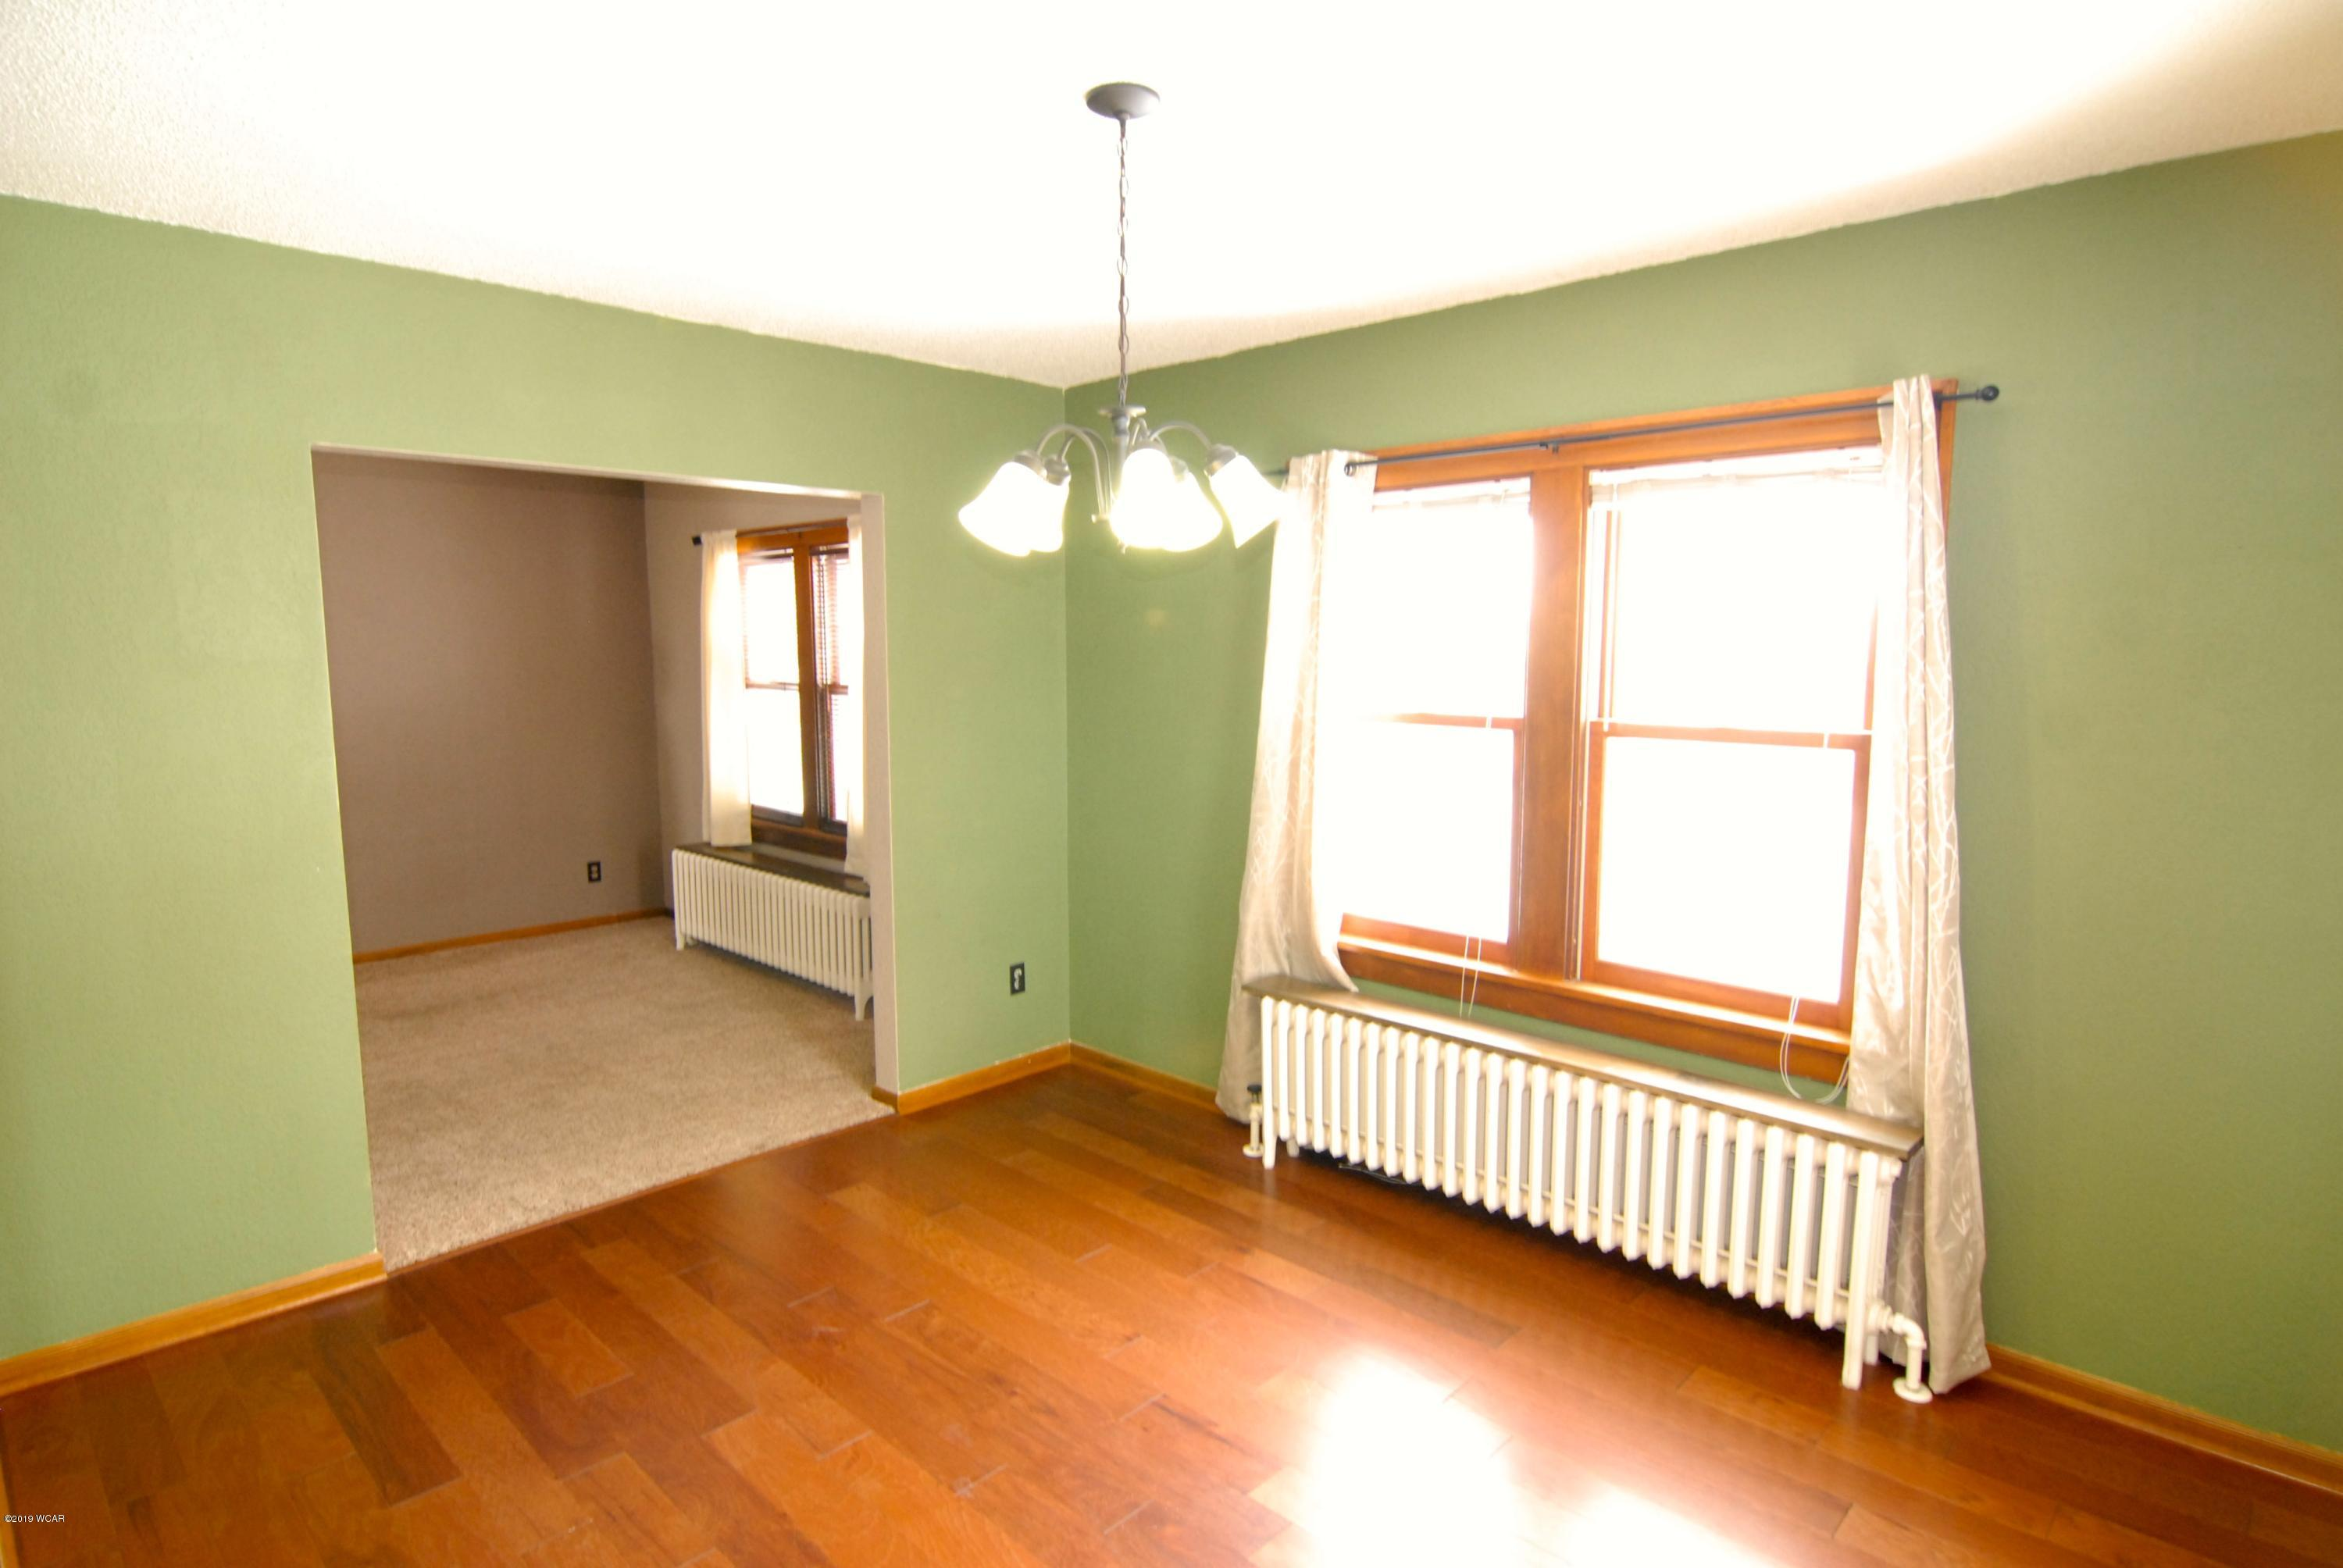 325 2nd Street,Fairfax,2 Bedrooms Bedrooms,2 BathroomsBathrooms,Single Family,2nd Street,6033484